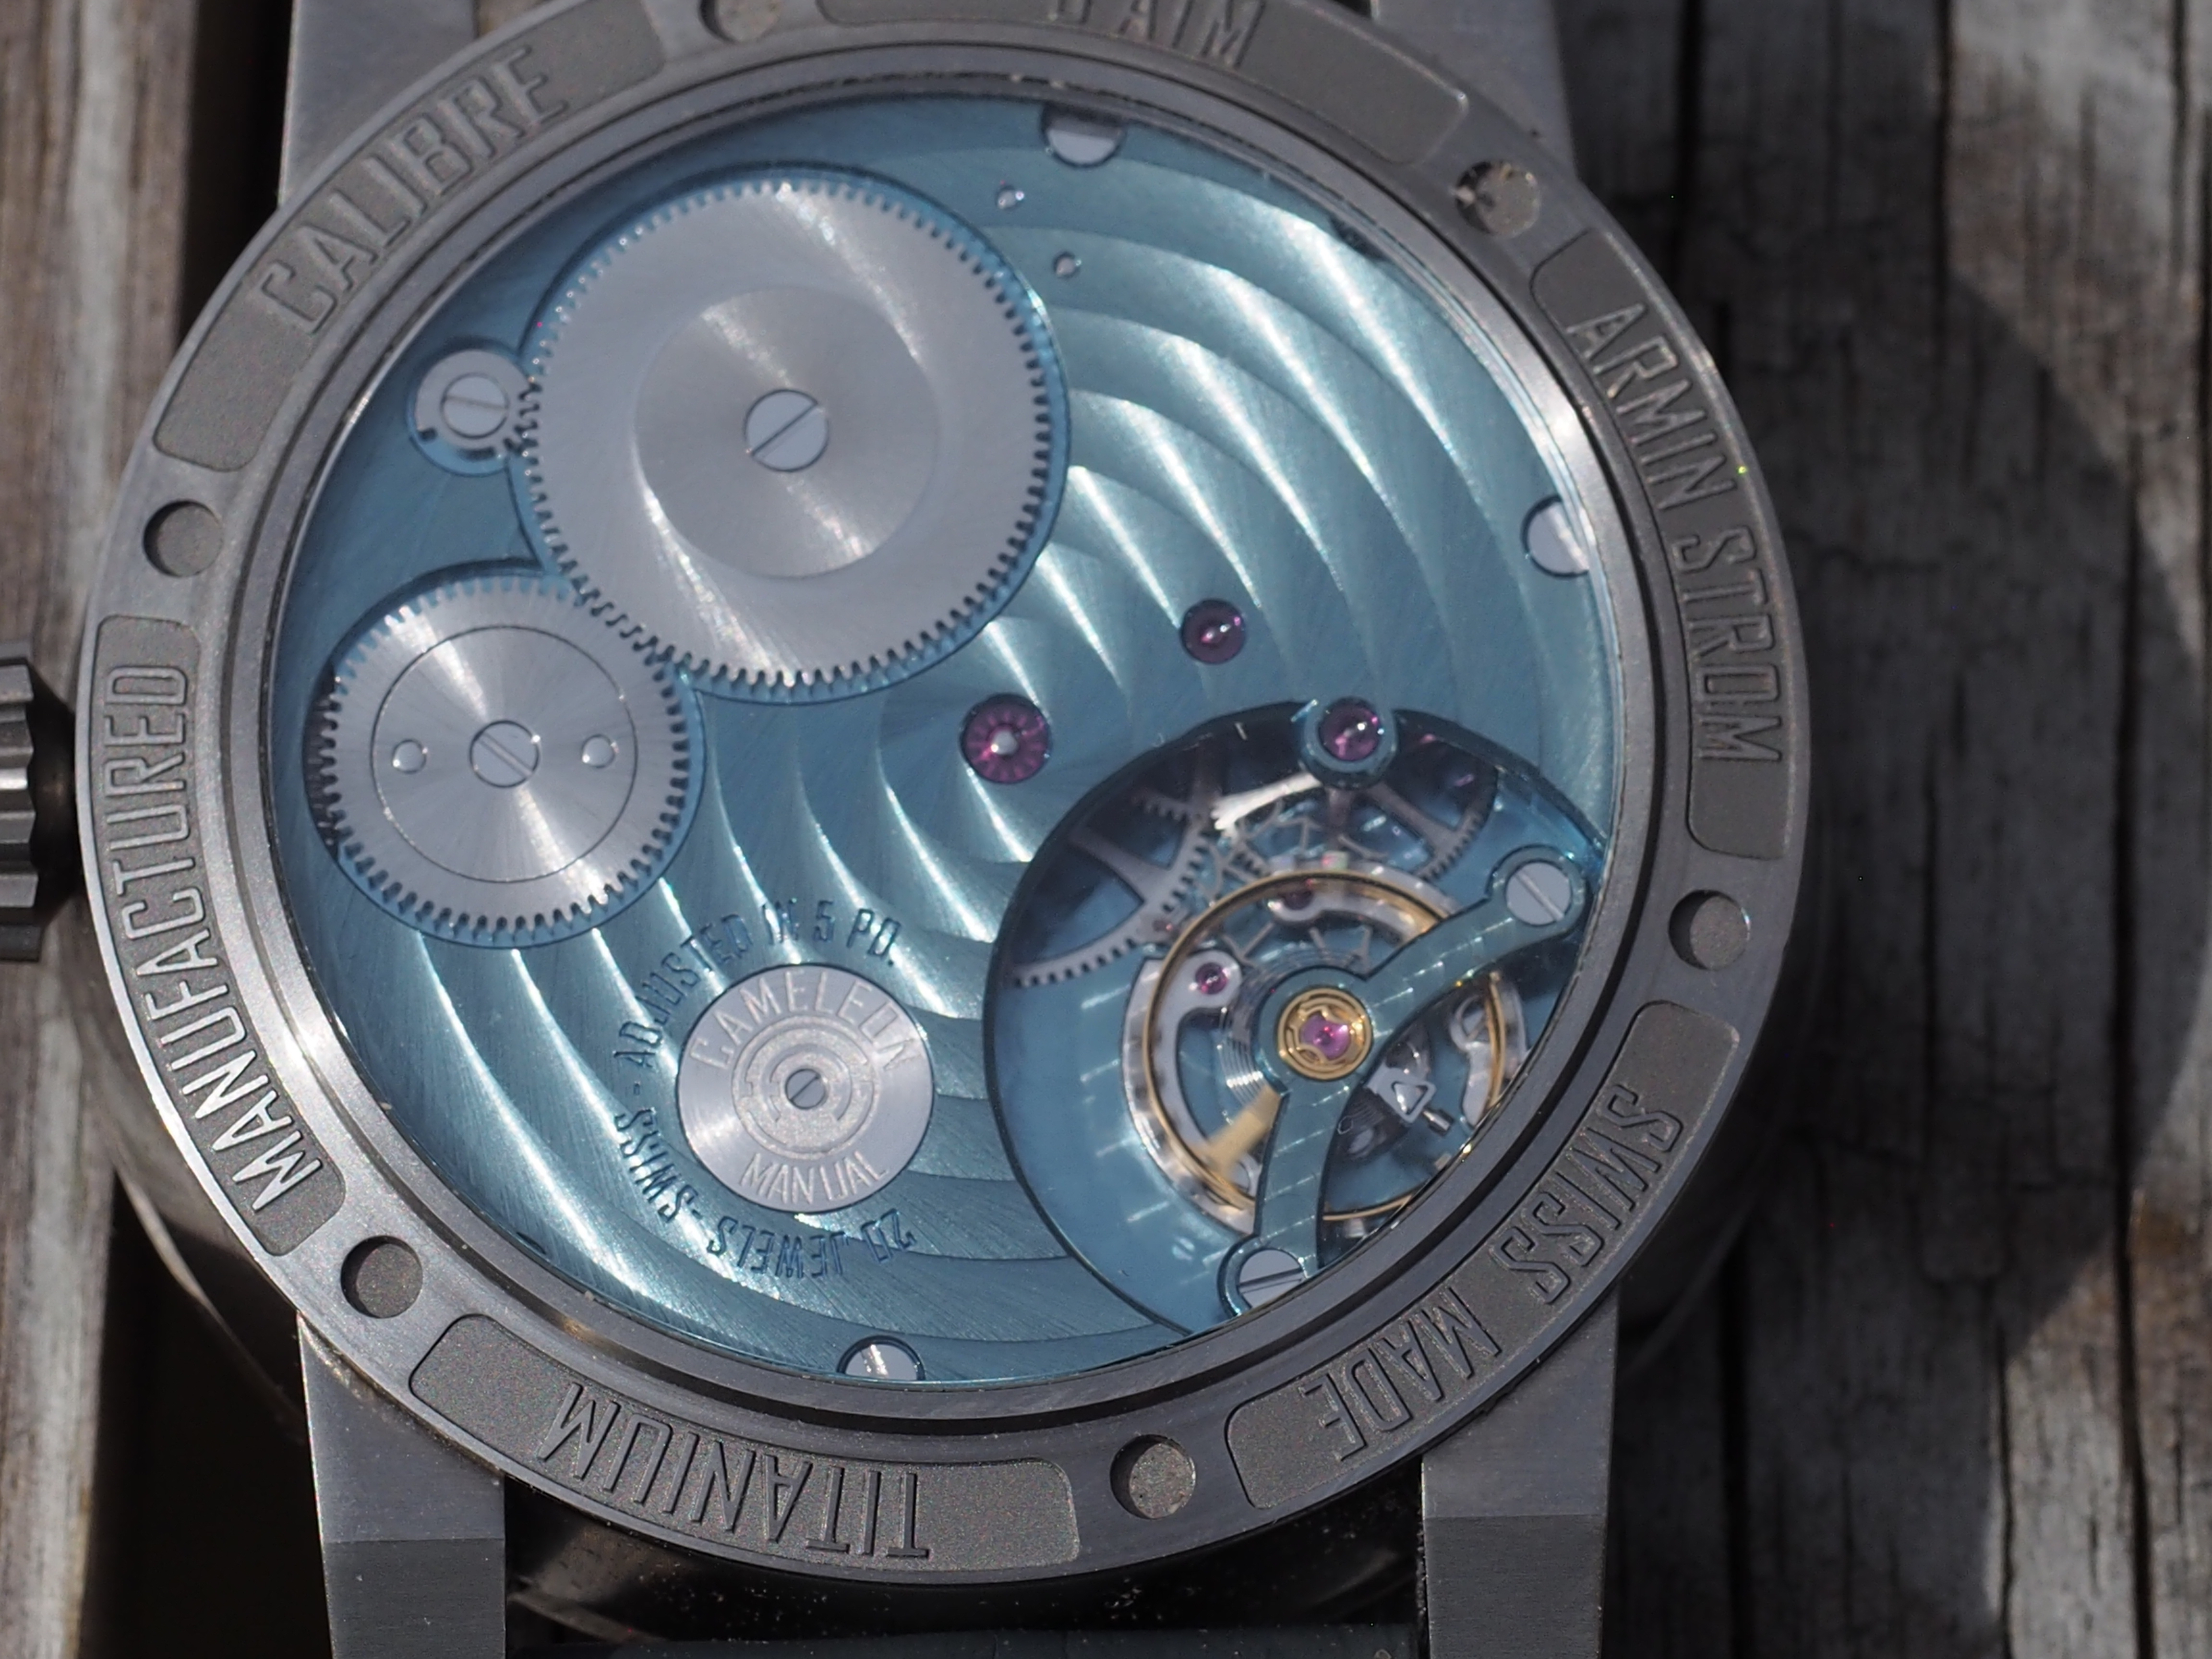 While the Armin Strom Cameleon Manual watch seen here is configured in blue, you can choose any colors for the caliber components.